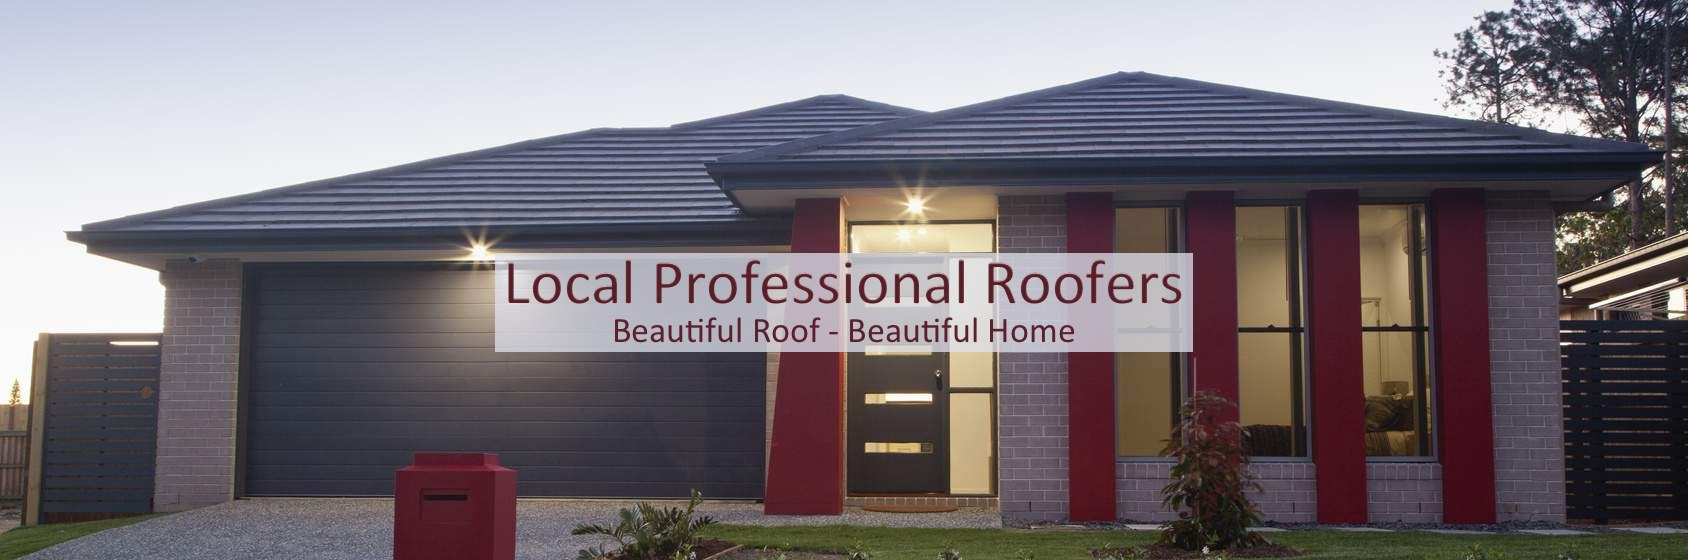 Roof Restoration Central Coast - Local Roofers